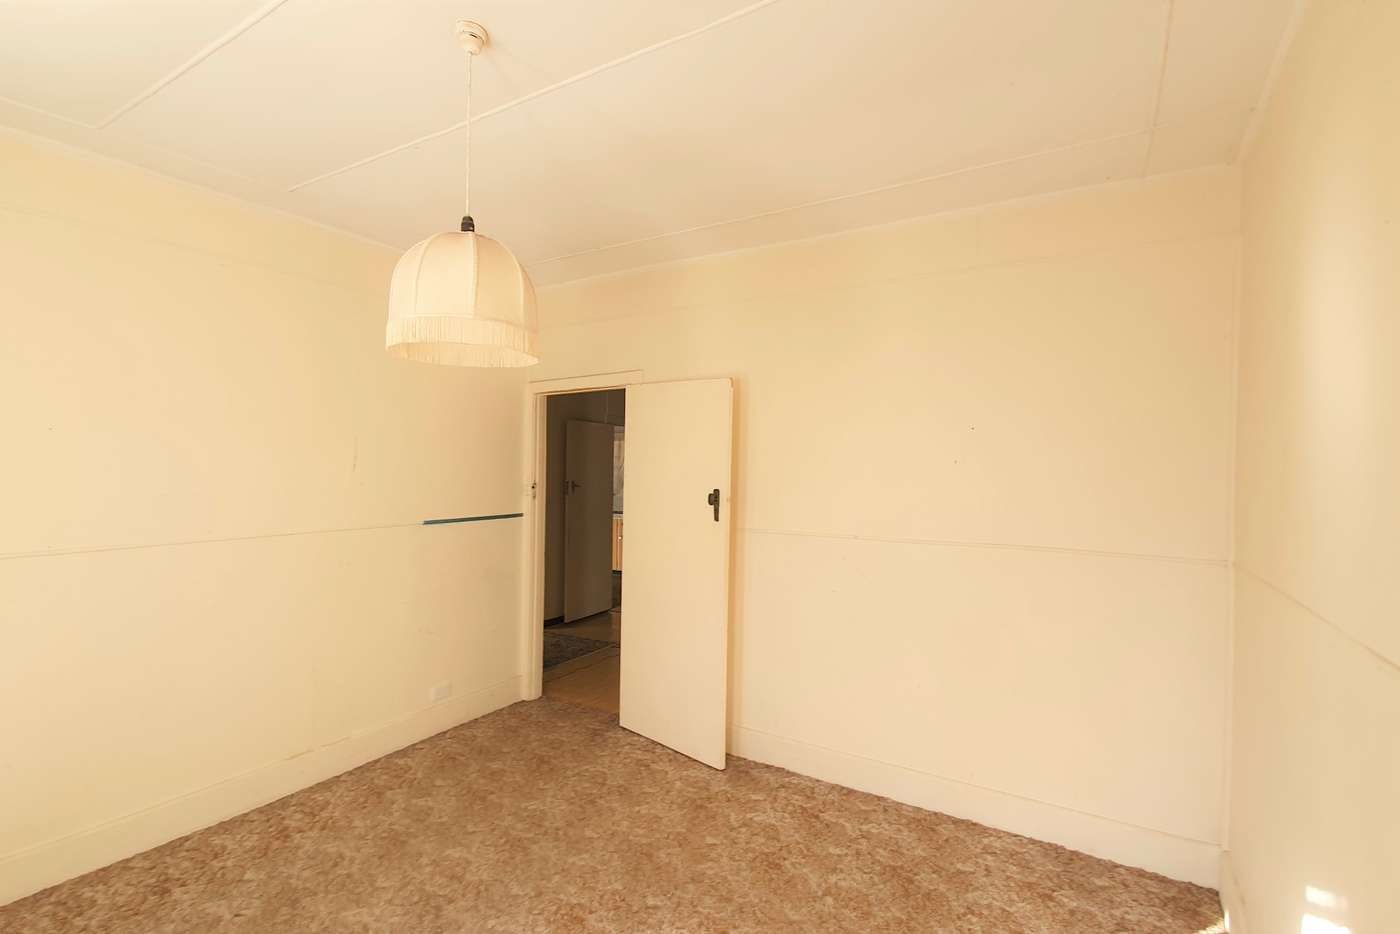 Seventh view of Homely house listing, 43 EDOLS STREET, Ballan VIC 3342